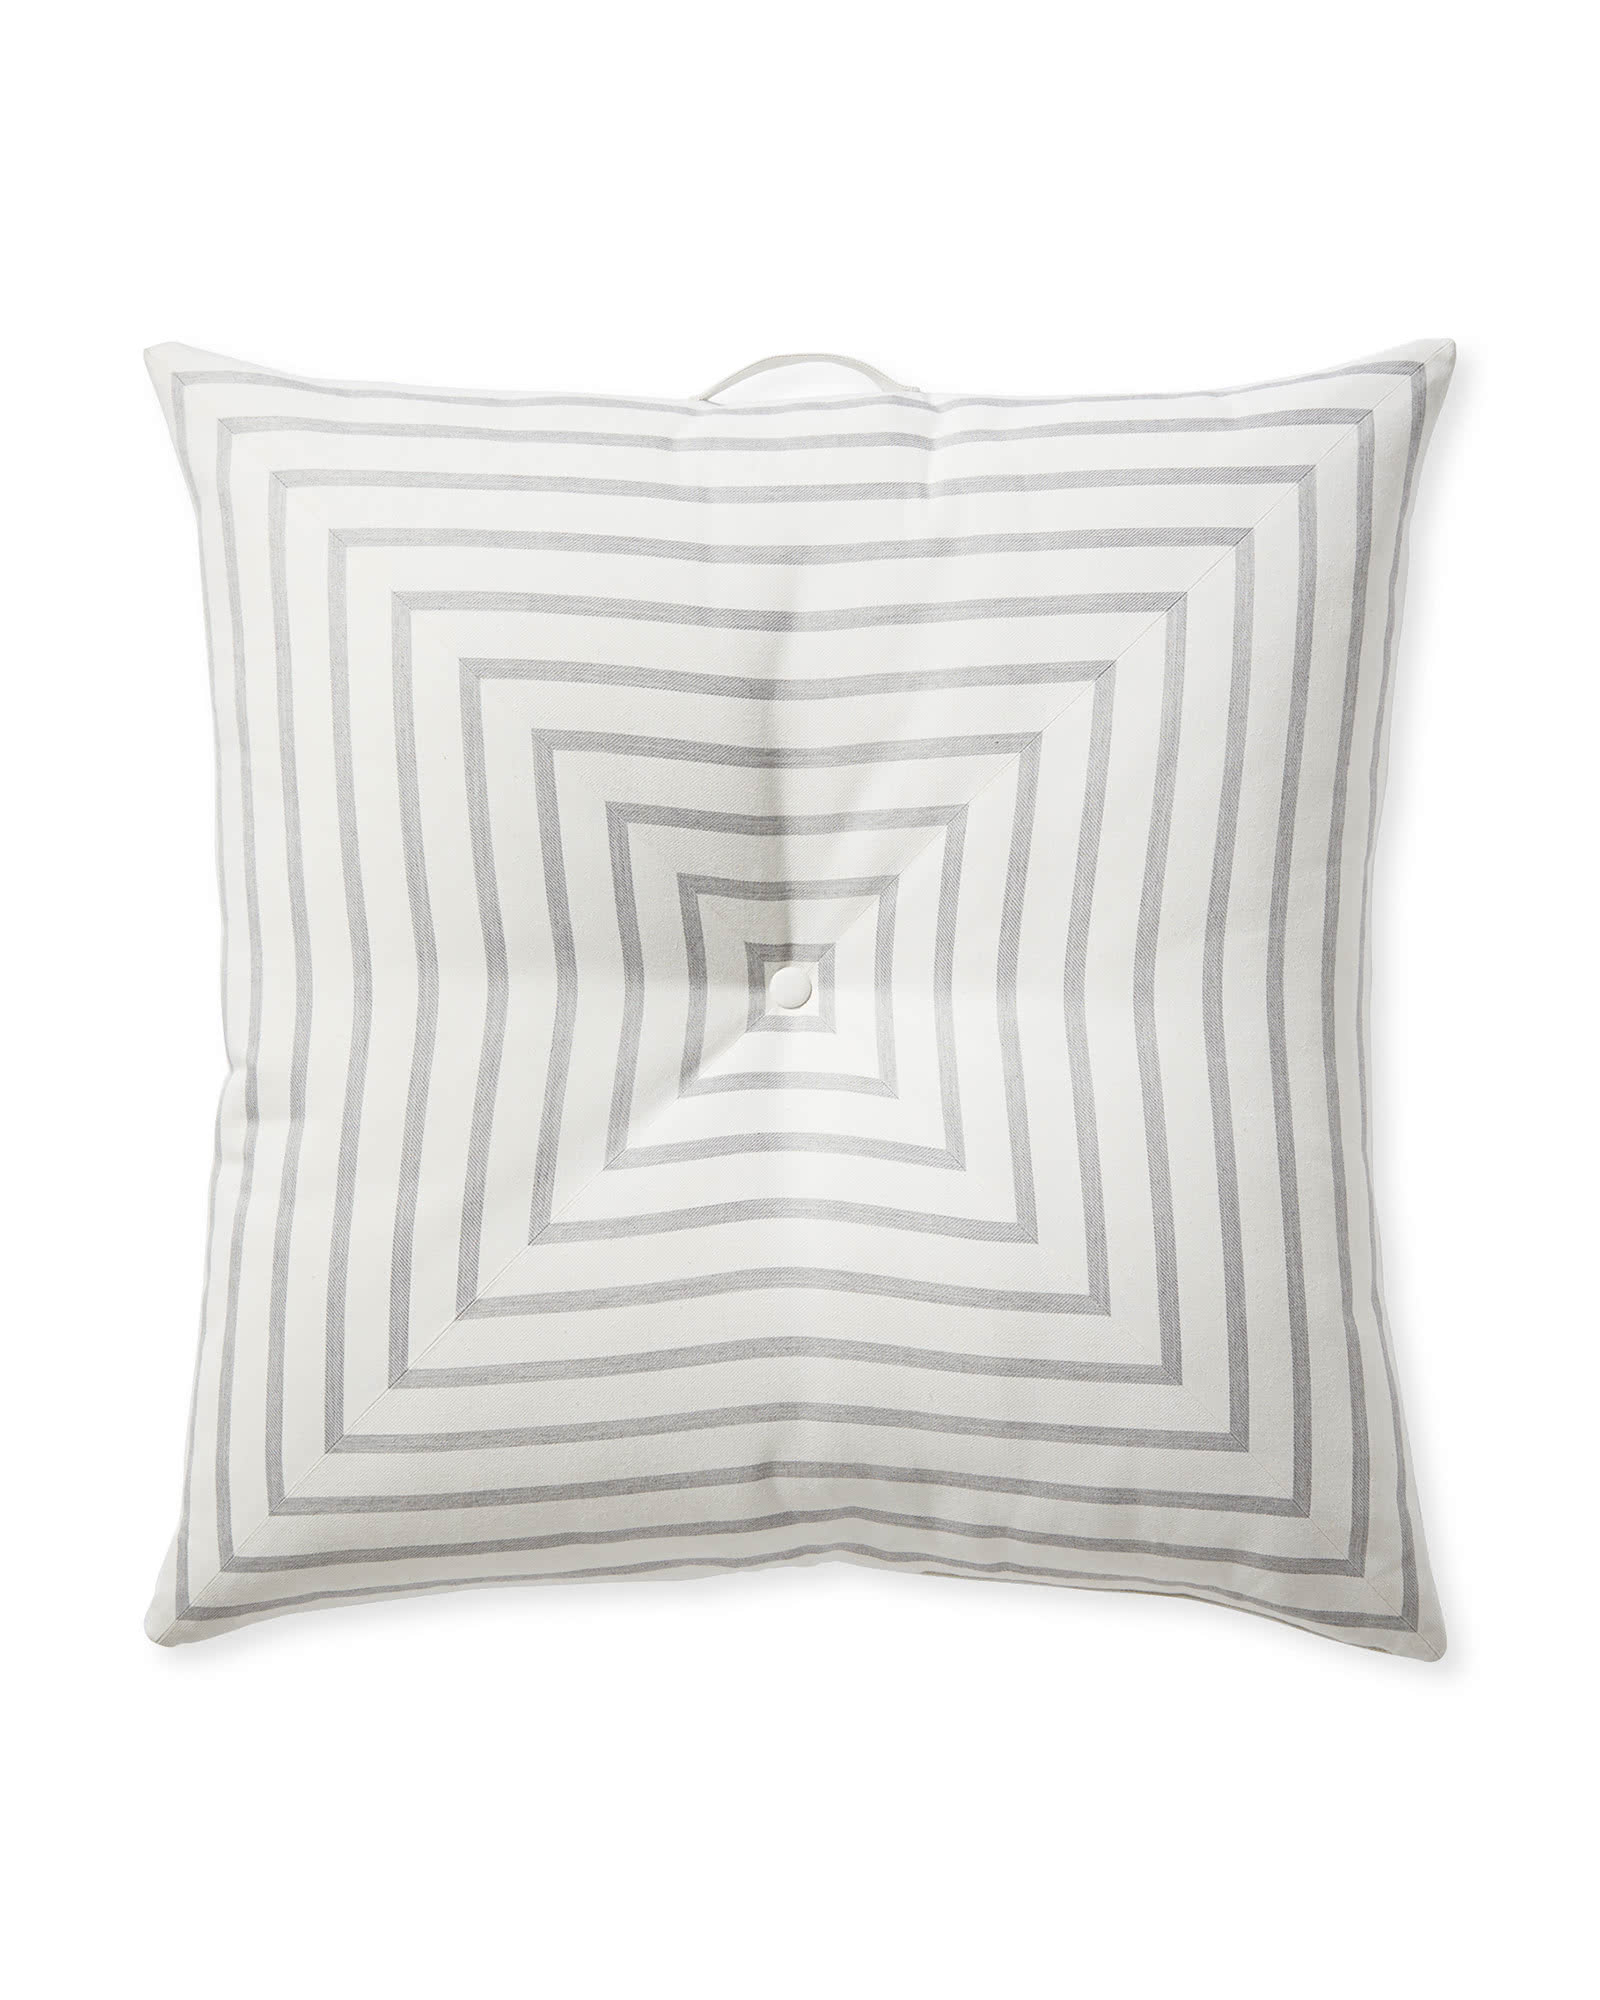 Harbour Island Floor Pillow, Lido Stripe Fog